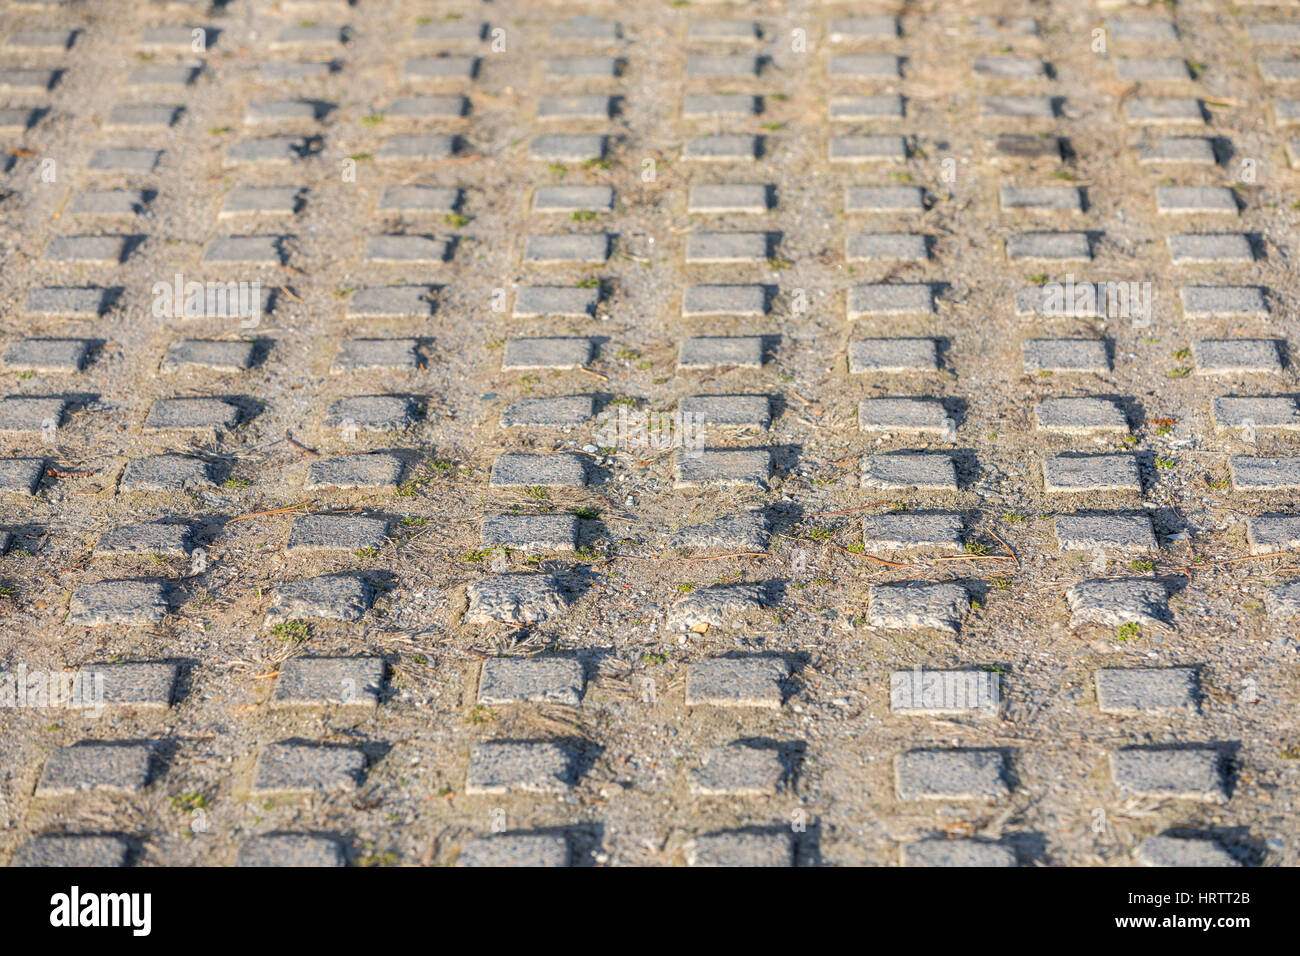 concrete grid that is part of a driveway - Stock Image